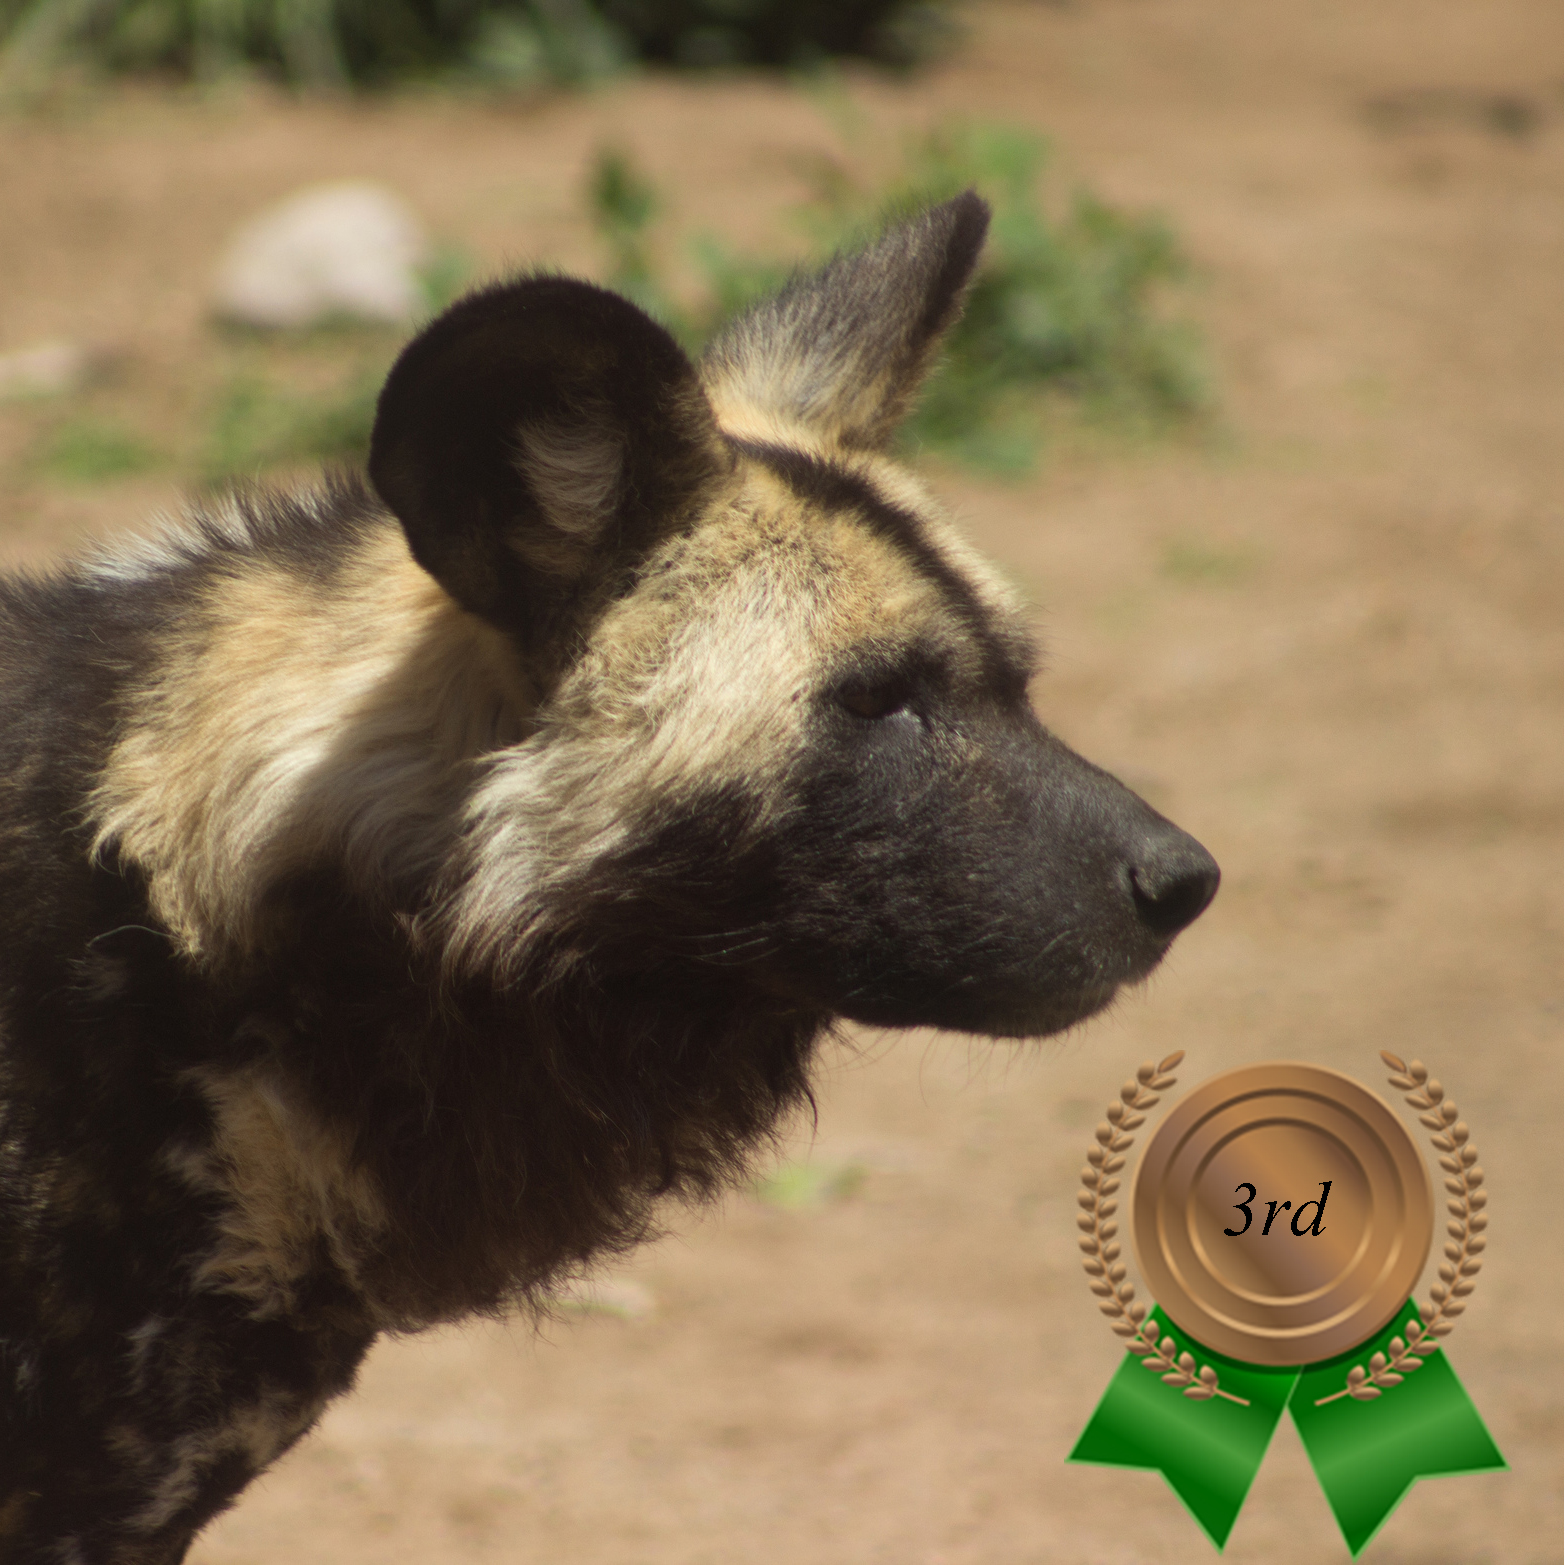 Zoo's Fastest Animal African painted dog